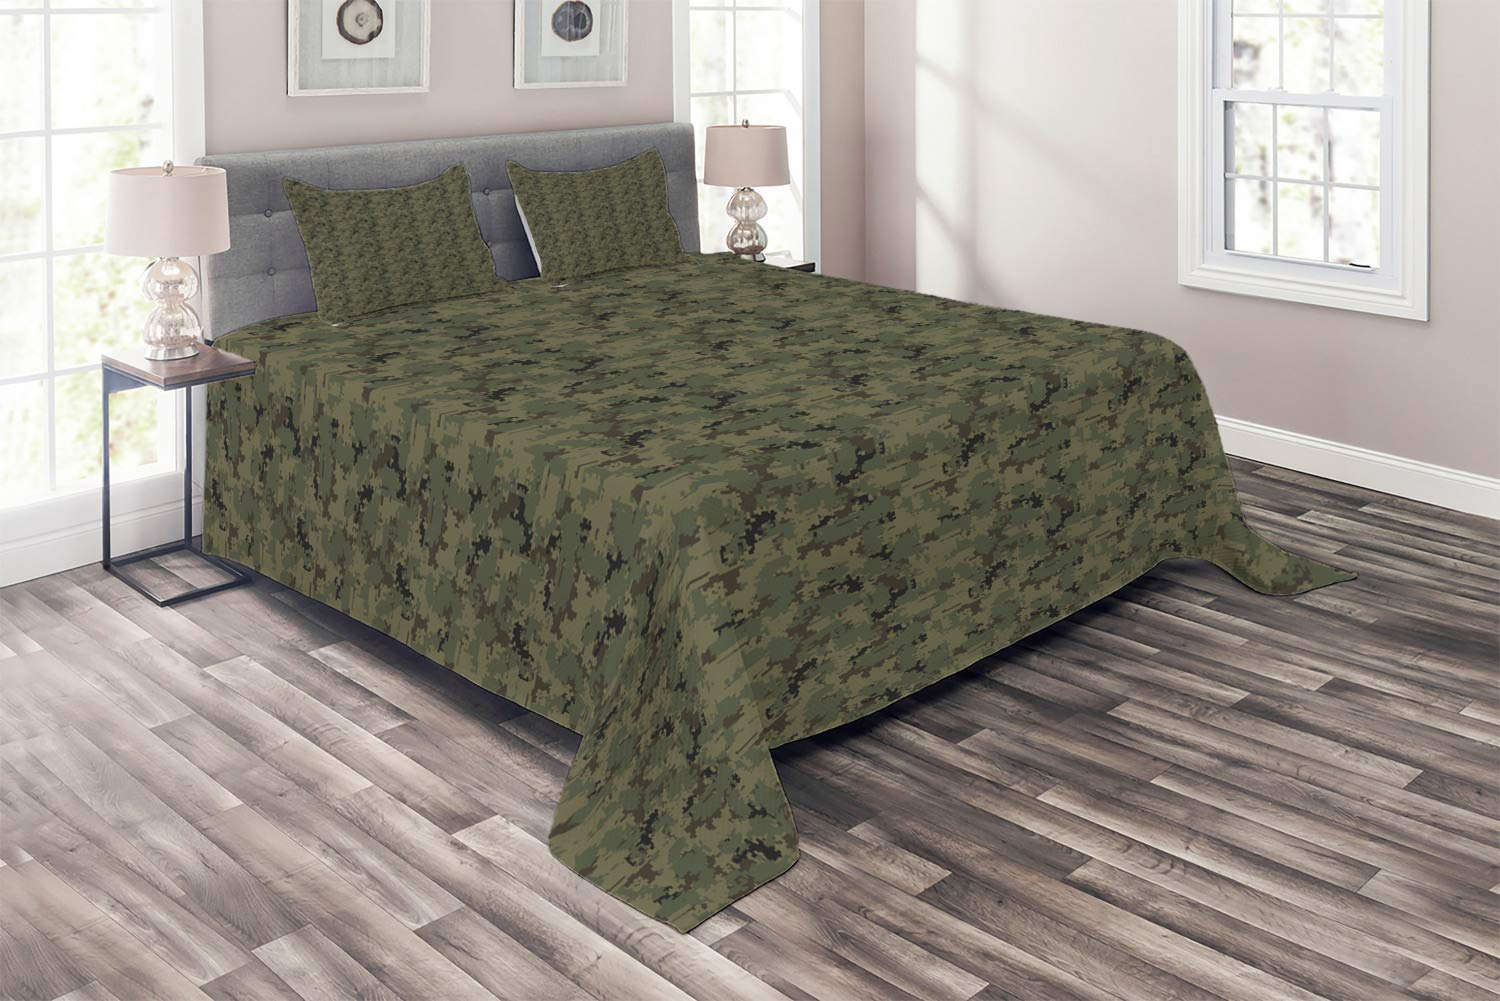 Ambesonne Camouflage Coverlet, Digital Pixel Design Repeating Camo Pattern, 3 Piece Decorative Quilted Bedspread Set with 2 Pillow Shams, Queen Size, Khaki Green